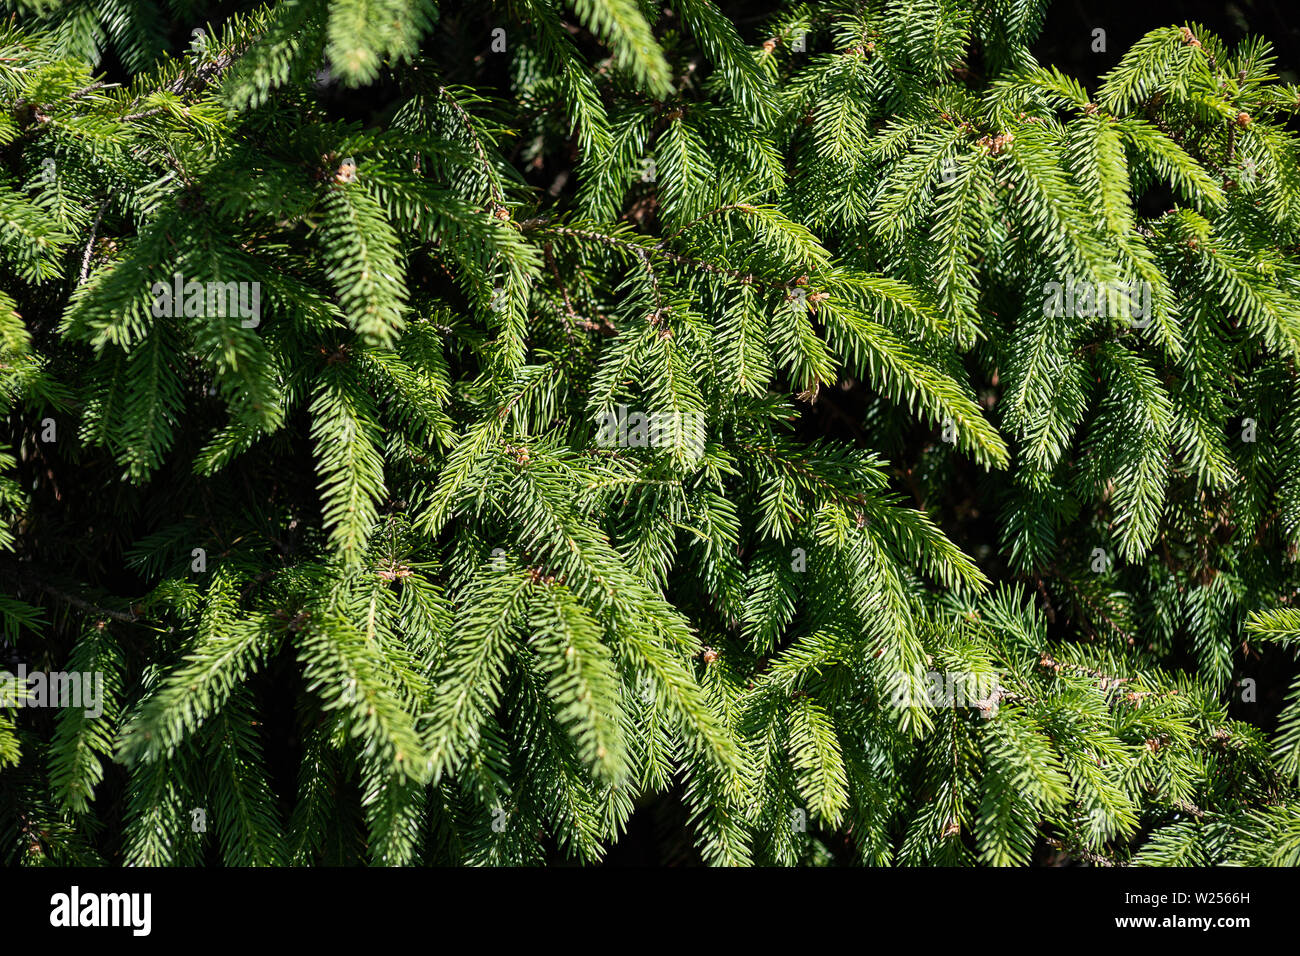 Background of Christmas tree branches. Fresh green fir-tree branches in a Sunny forest - Stock Image